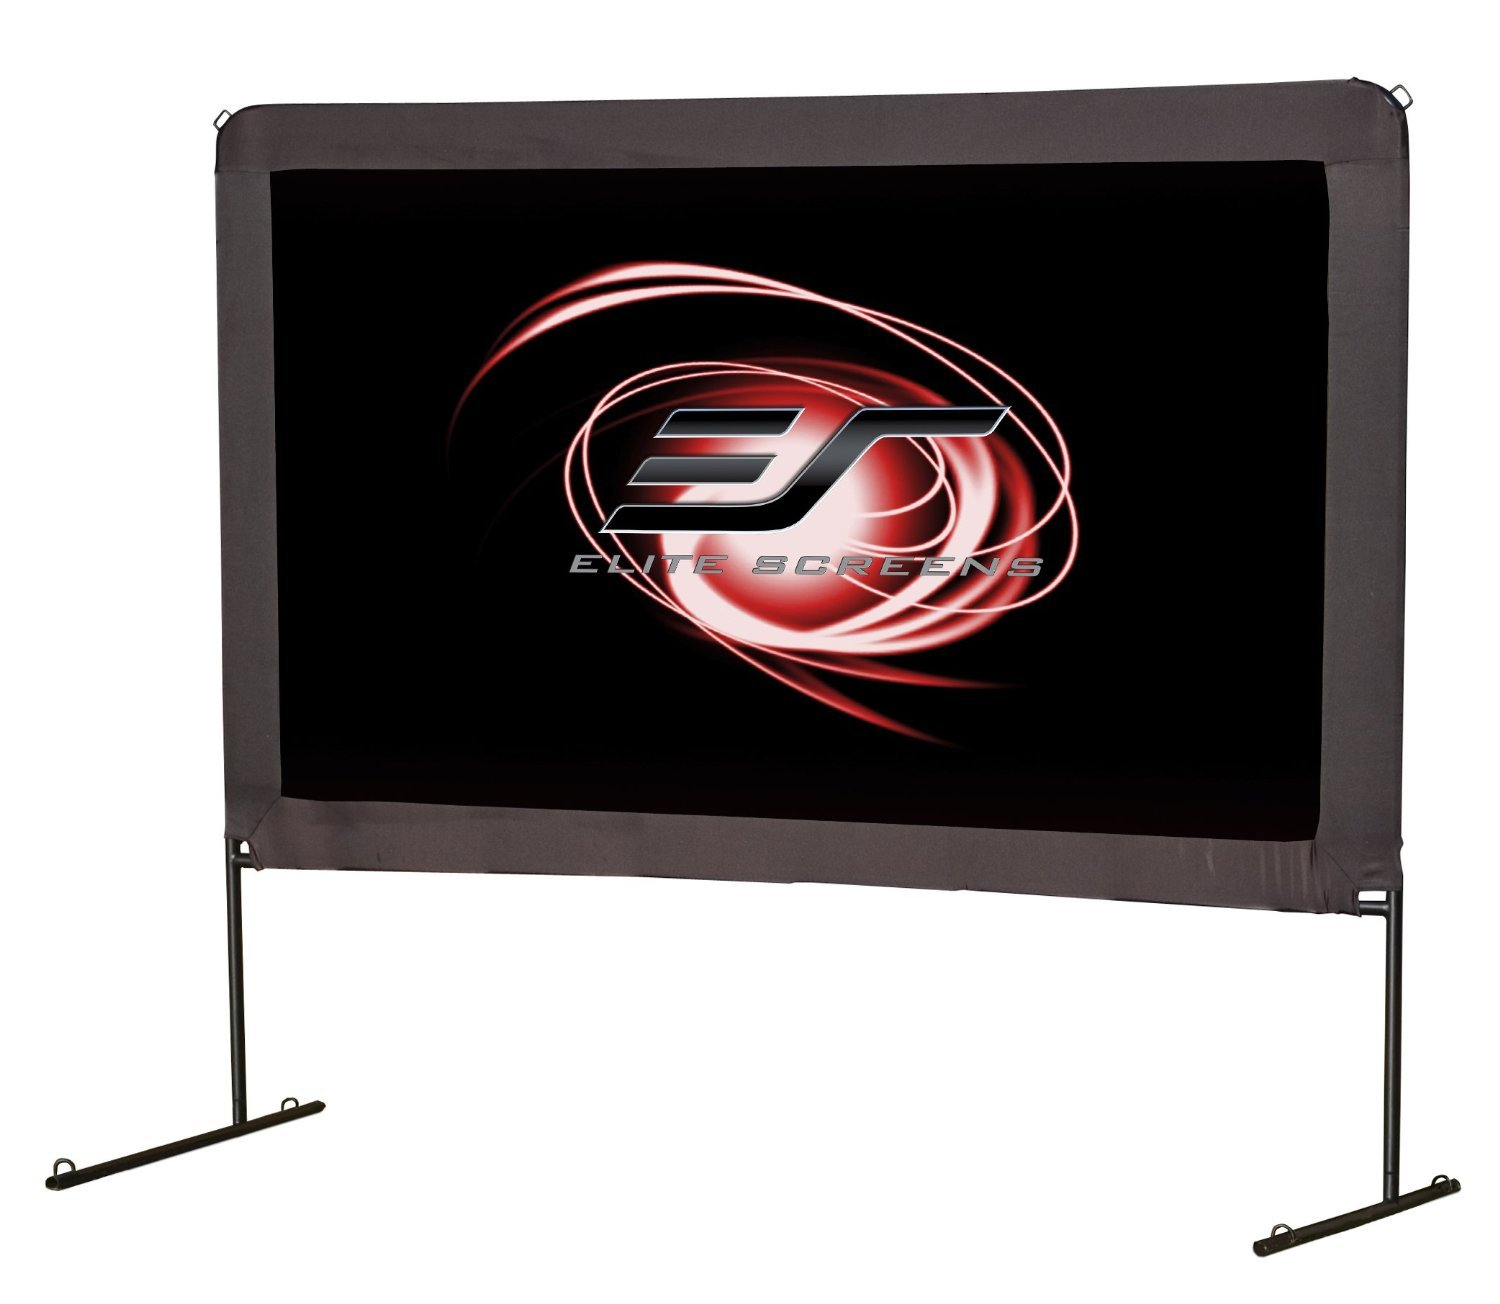 Elite Screens Yard Master Series, 120-in 16:9, Foldable Outdoor Portable Light Weight Front Projection Movie Screen, OMS120H by Elite Screens